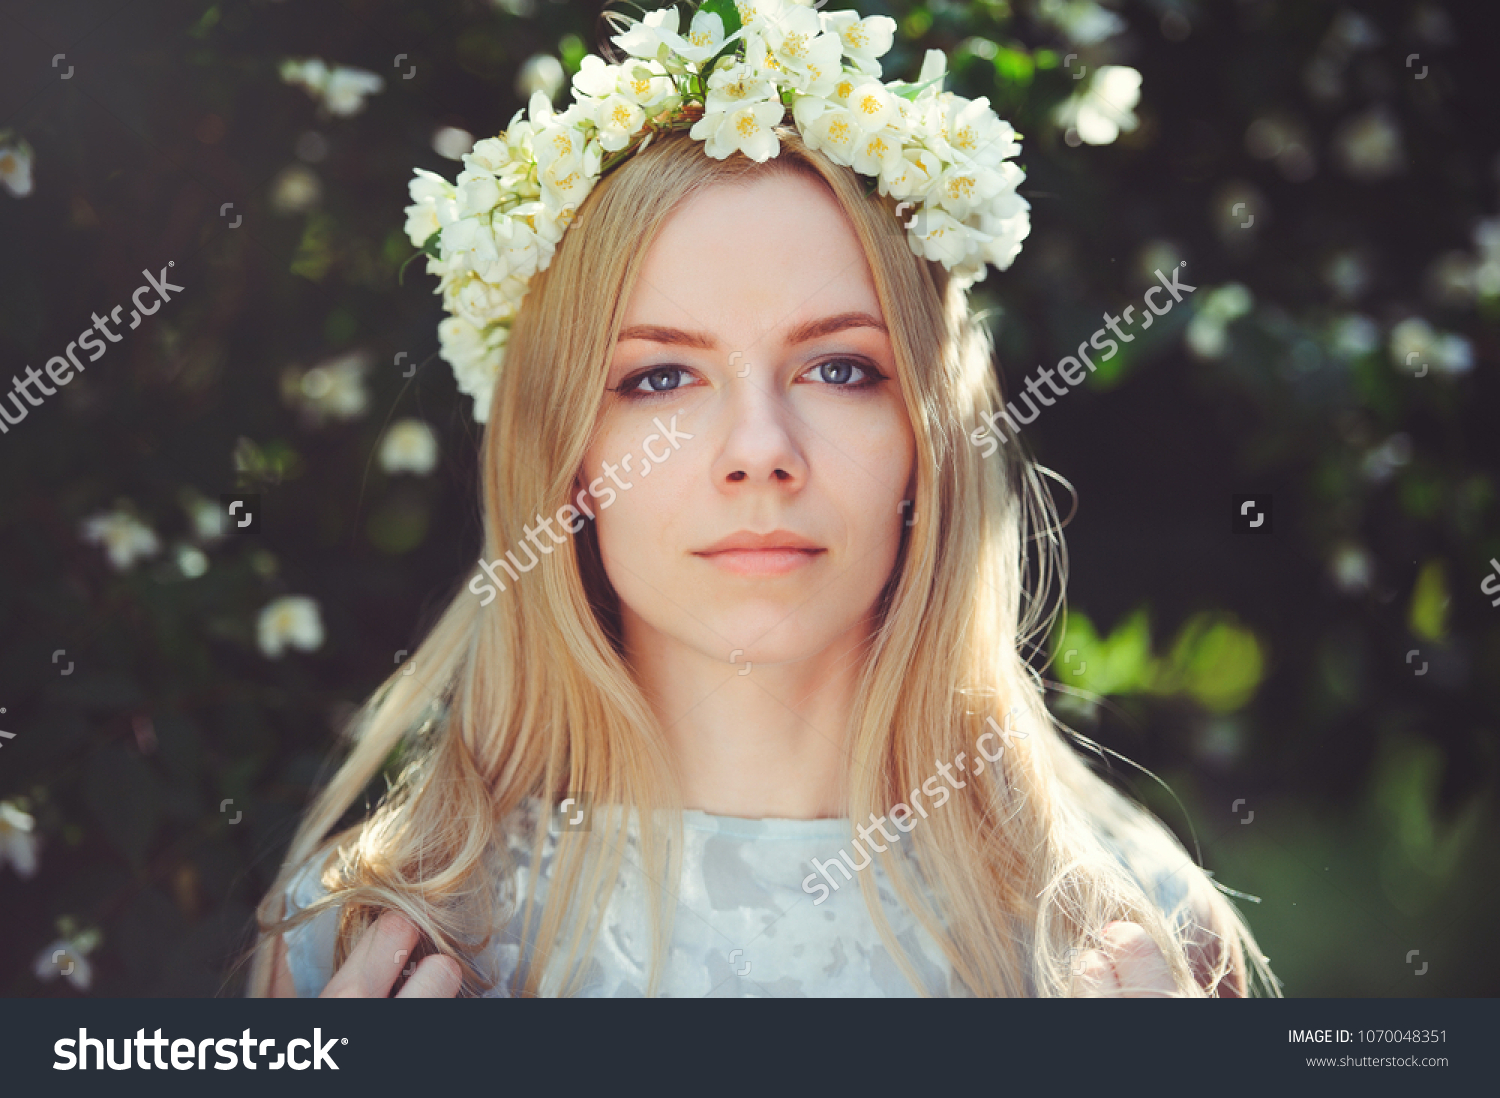 Attractive modest young girl blonde jasmine stock photo edit now attractive modest young girl with blonde with jasmine flowers wreath on head long hair and natural izmirmasajfo